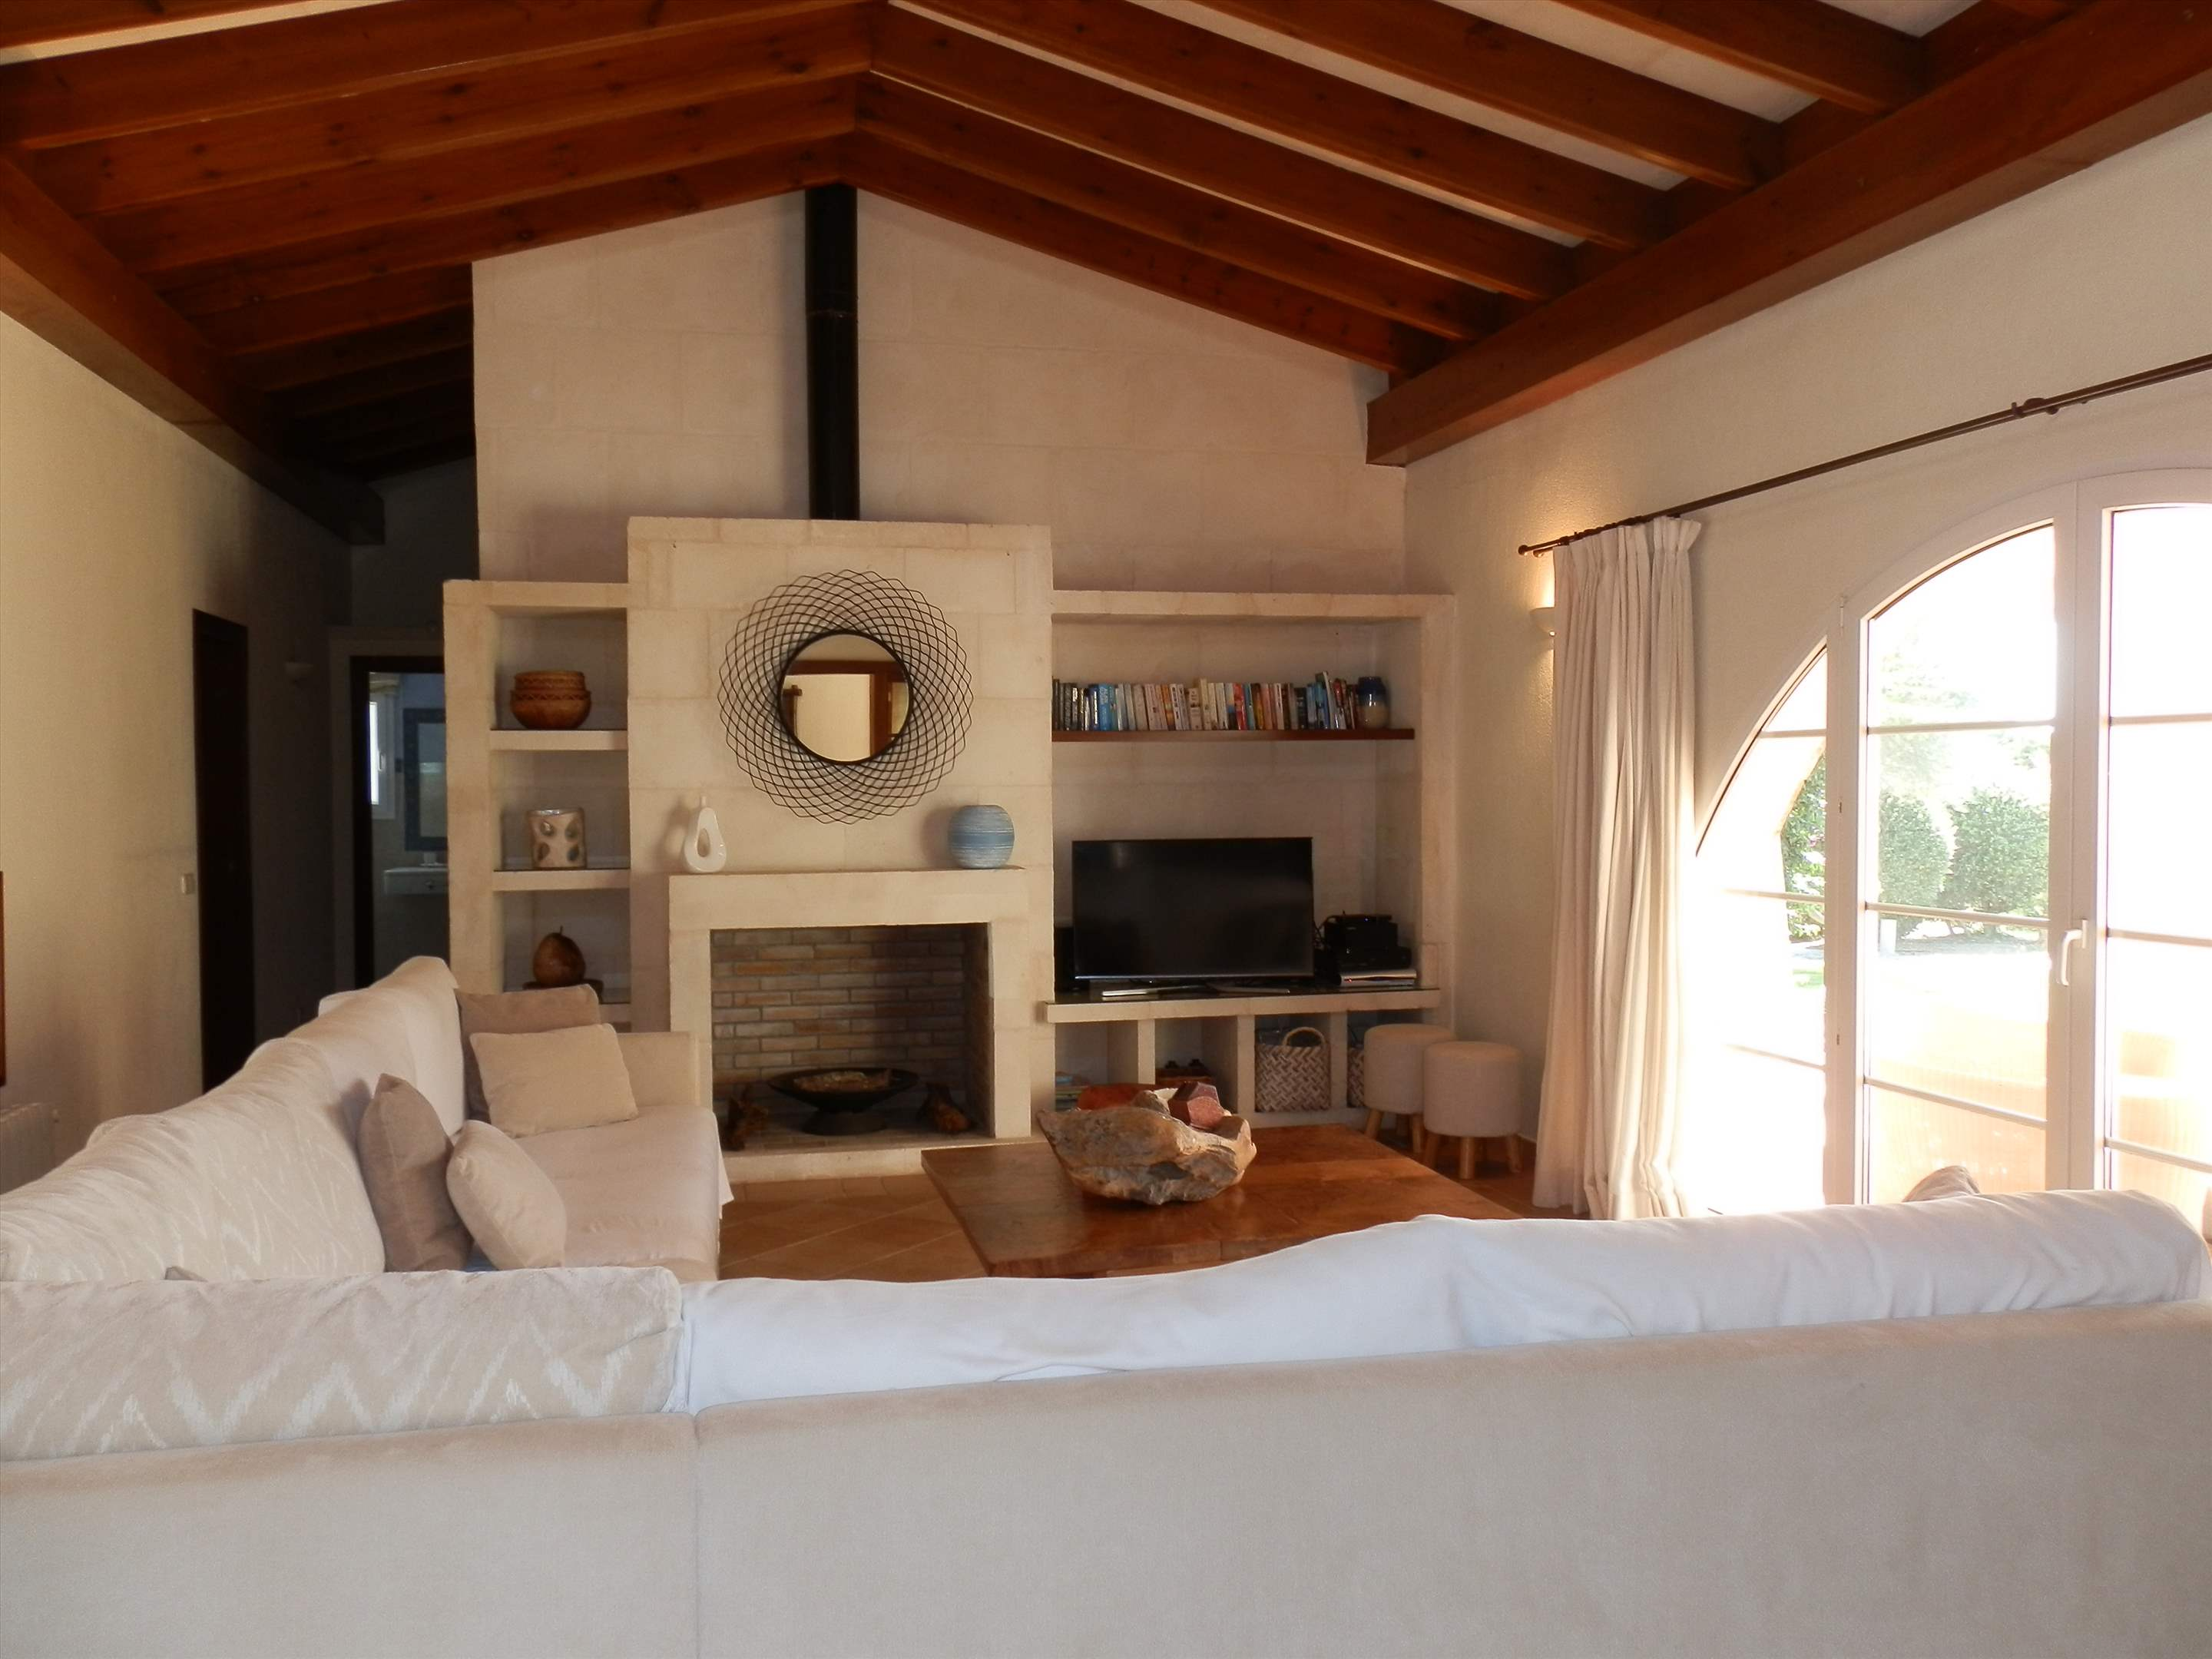 Villa Amanjena, 6 bedroom villa in Mahon, San Luis & South East, Menorca Photo #5